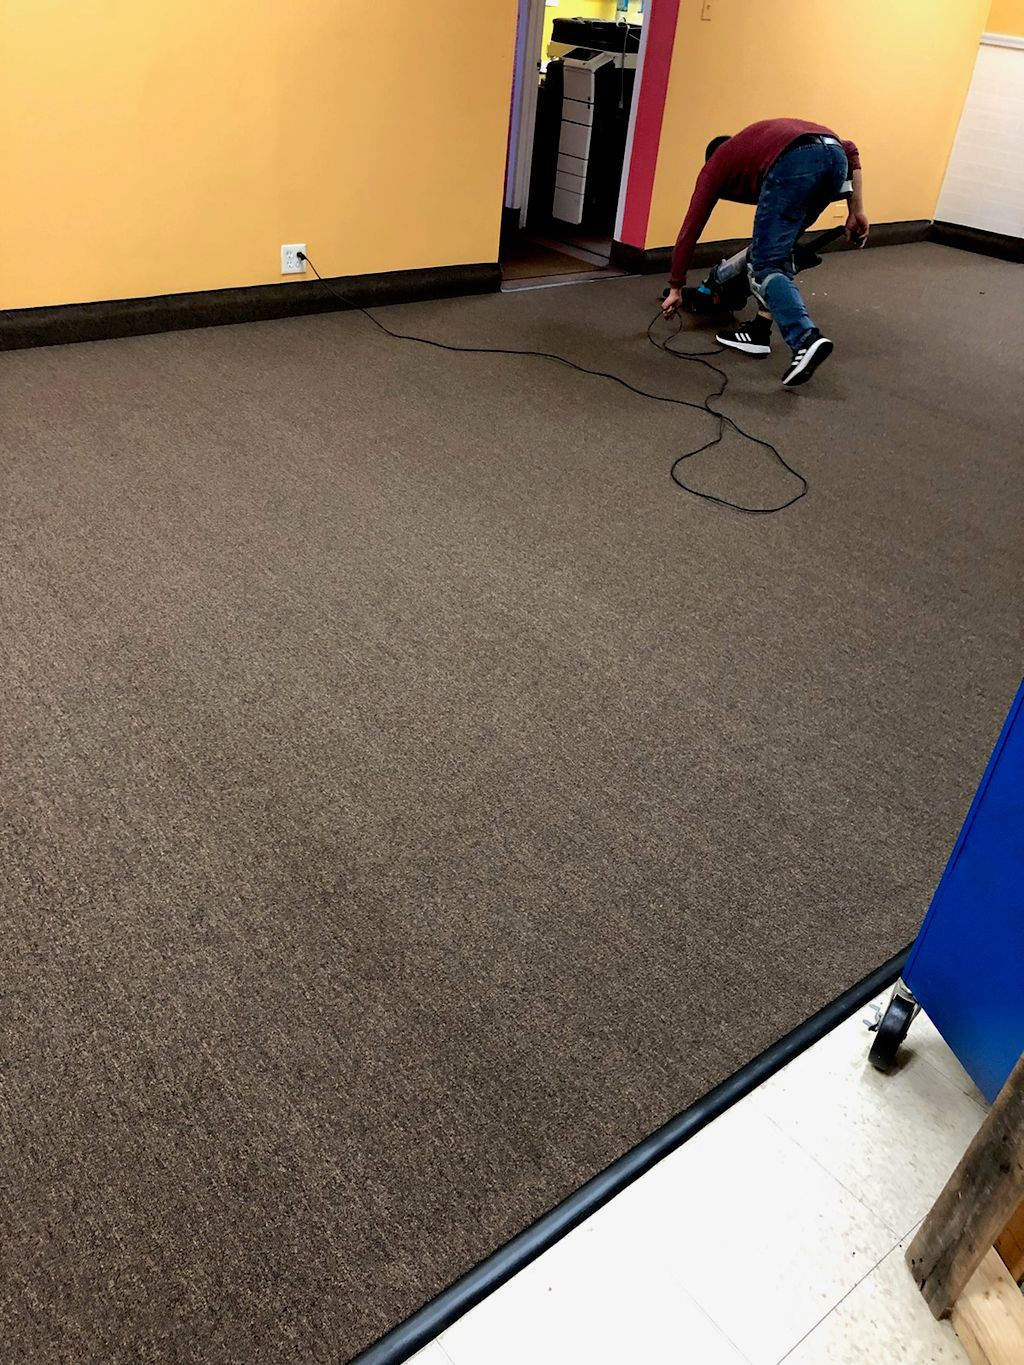 Day Care Carpet Replacement